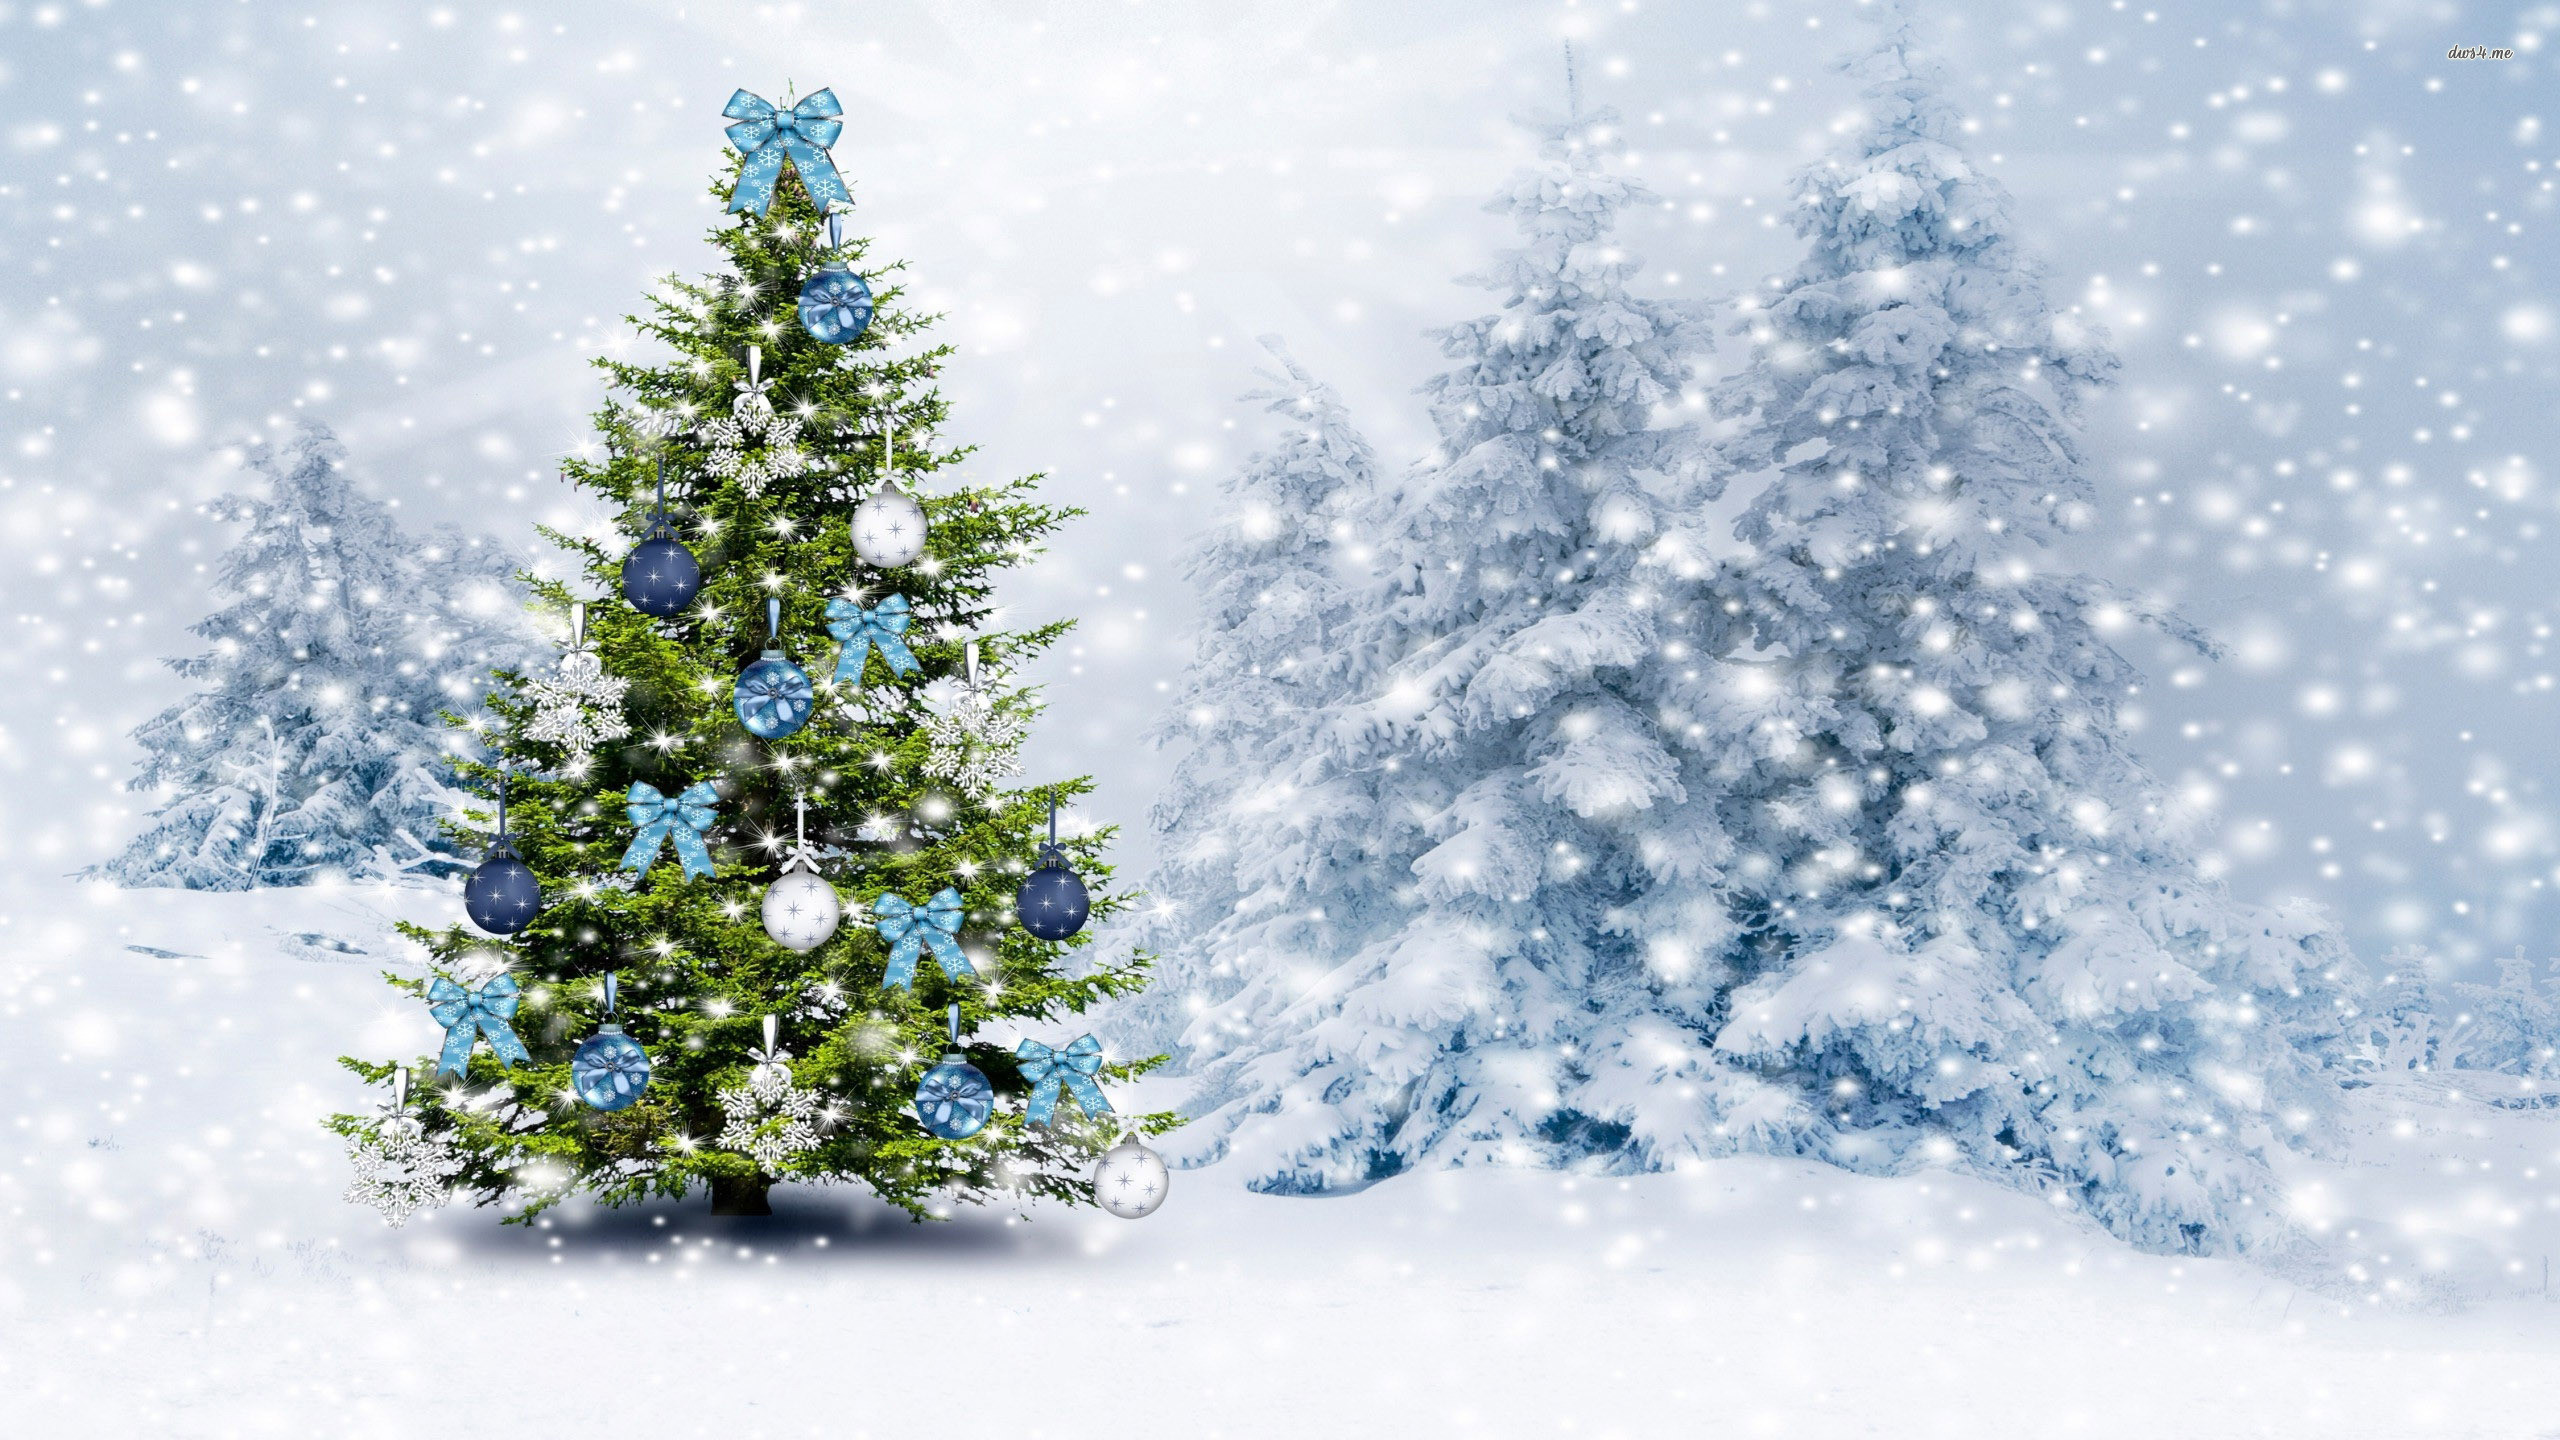 1920x1200 Snowy Christmas Tree Wallpapers